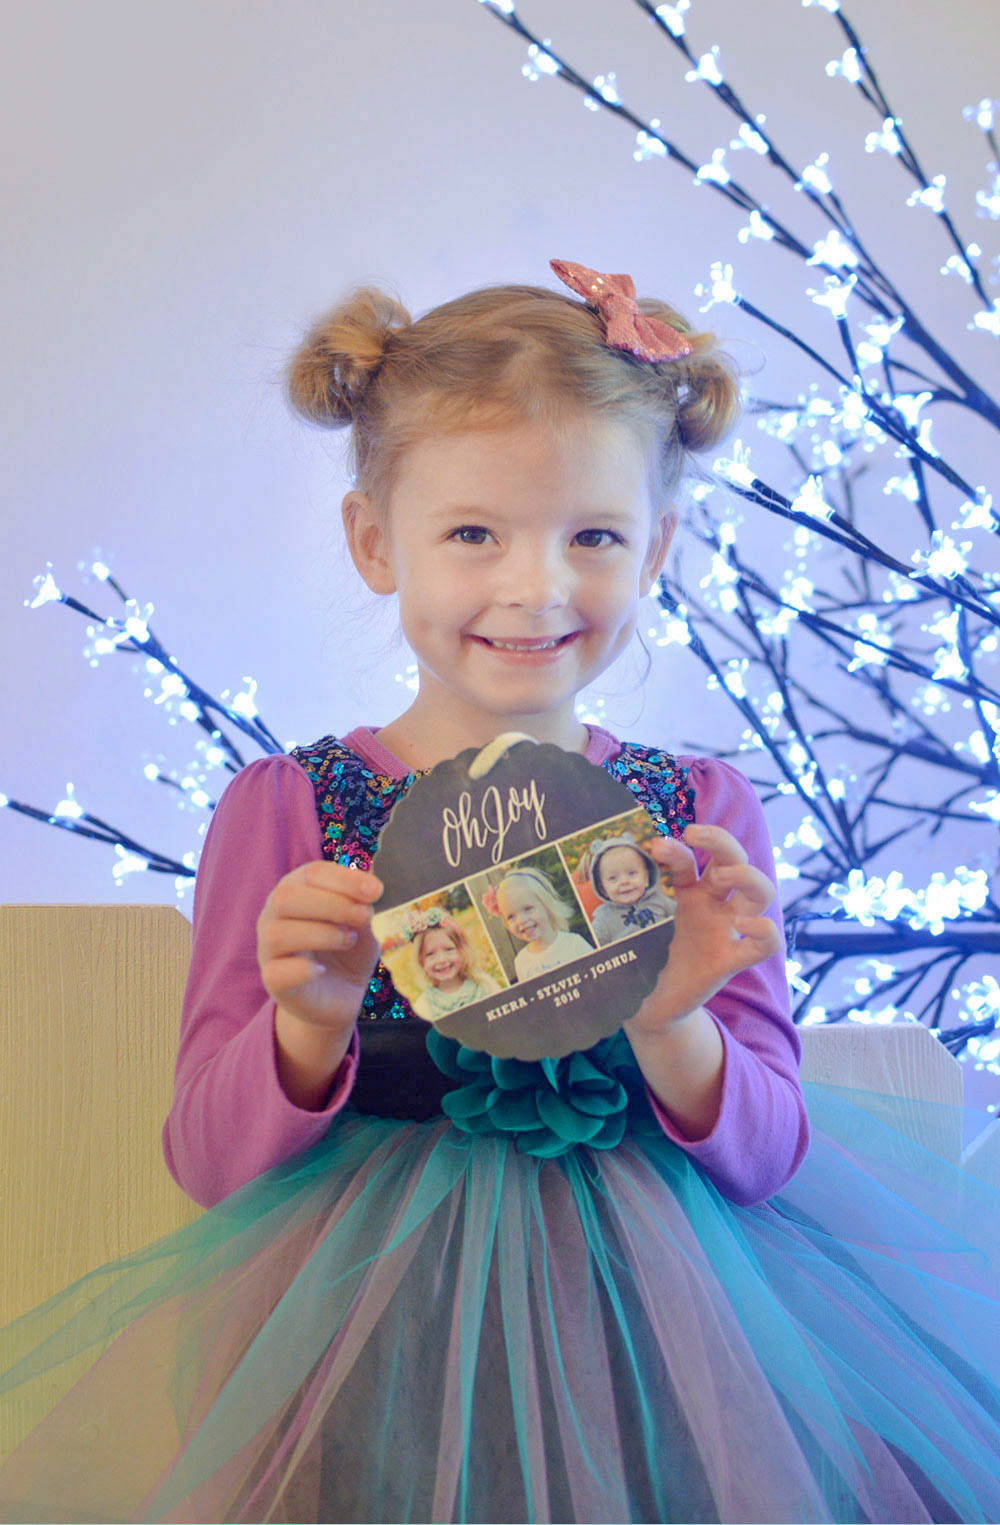 Personalized photo cards and Minted ornament cards